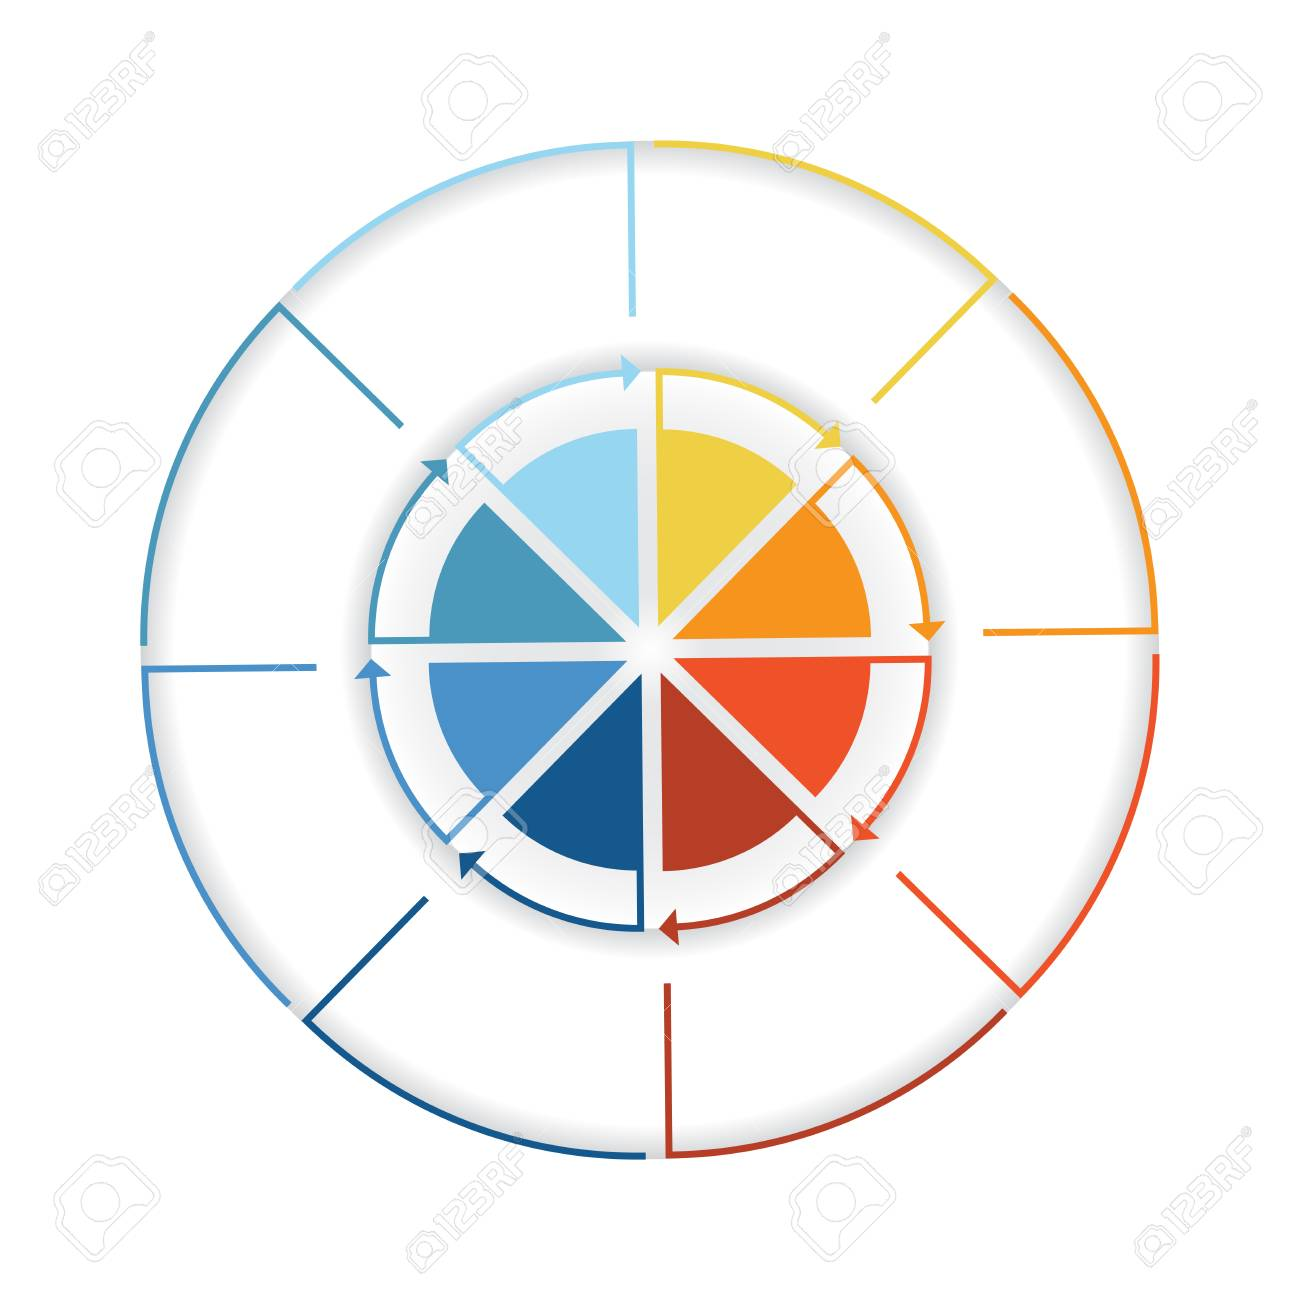 Arrows from colourful lines around circle template infographic arrows from colourful lines around circle template infographic eight position pie chart stock photo nvjuhfo Choice Image